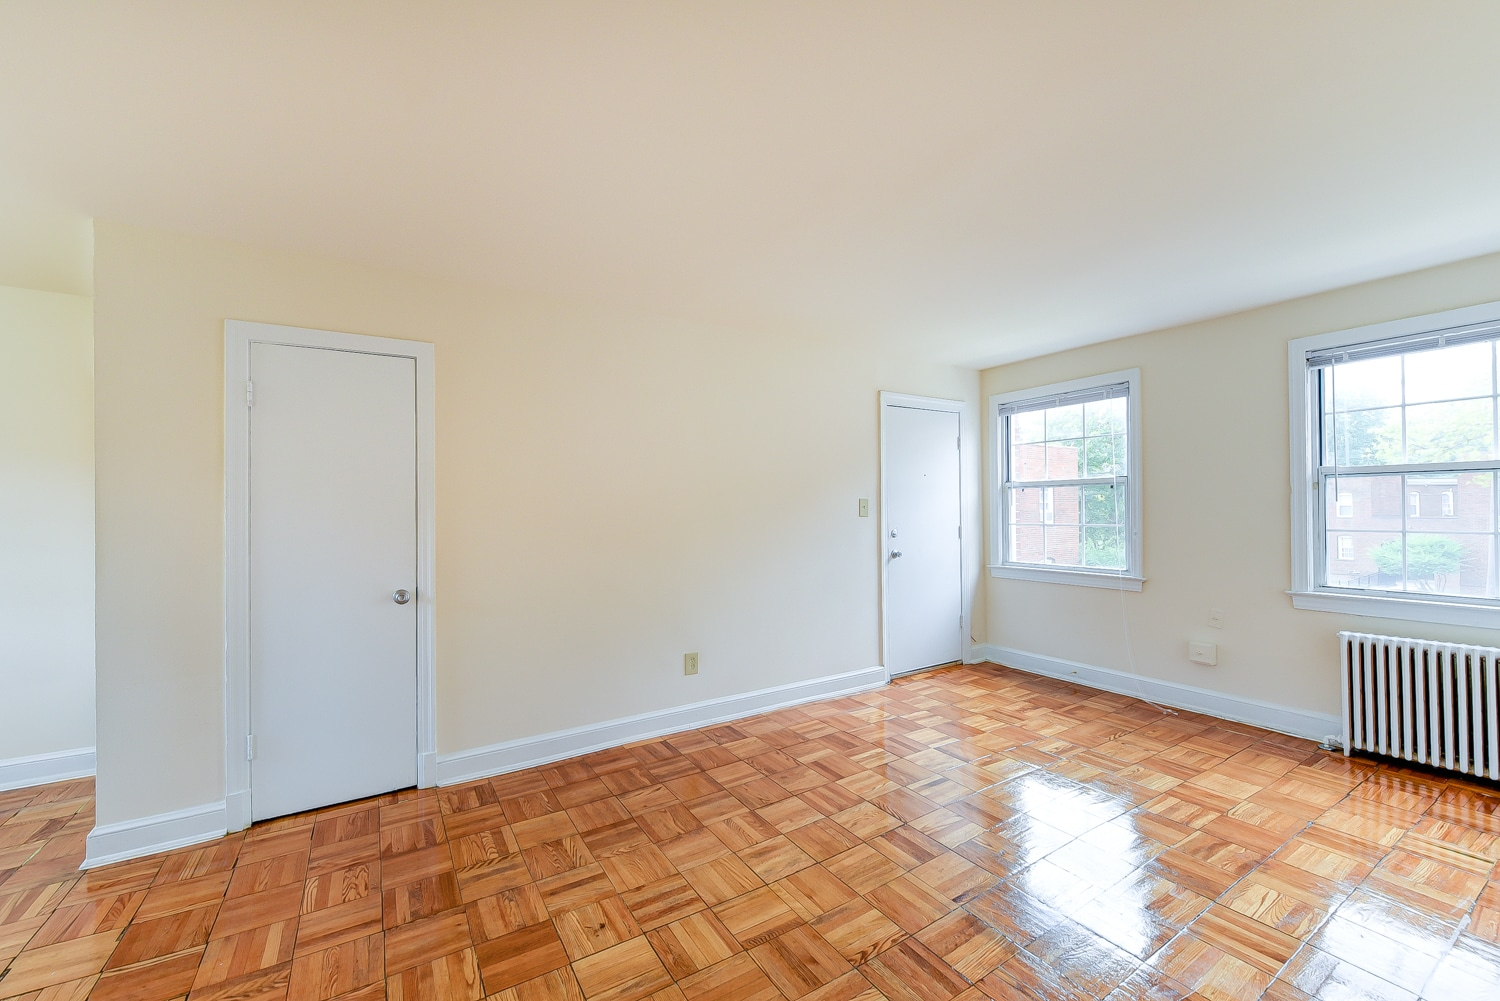 2 Bedroom Apartments In Dc All Utilities Included 28 Images 3 Bedroom Apartments In Dc With